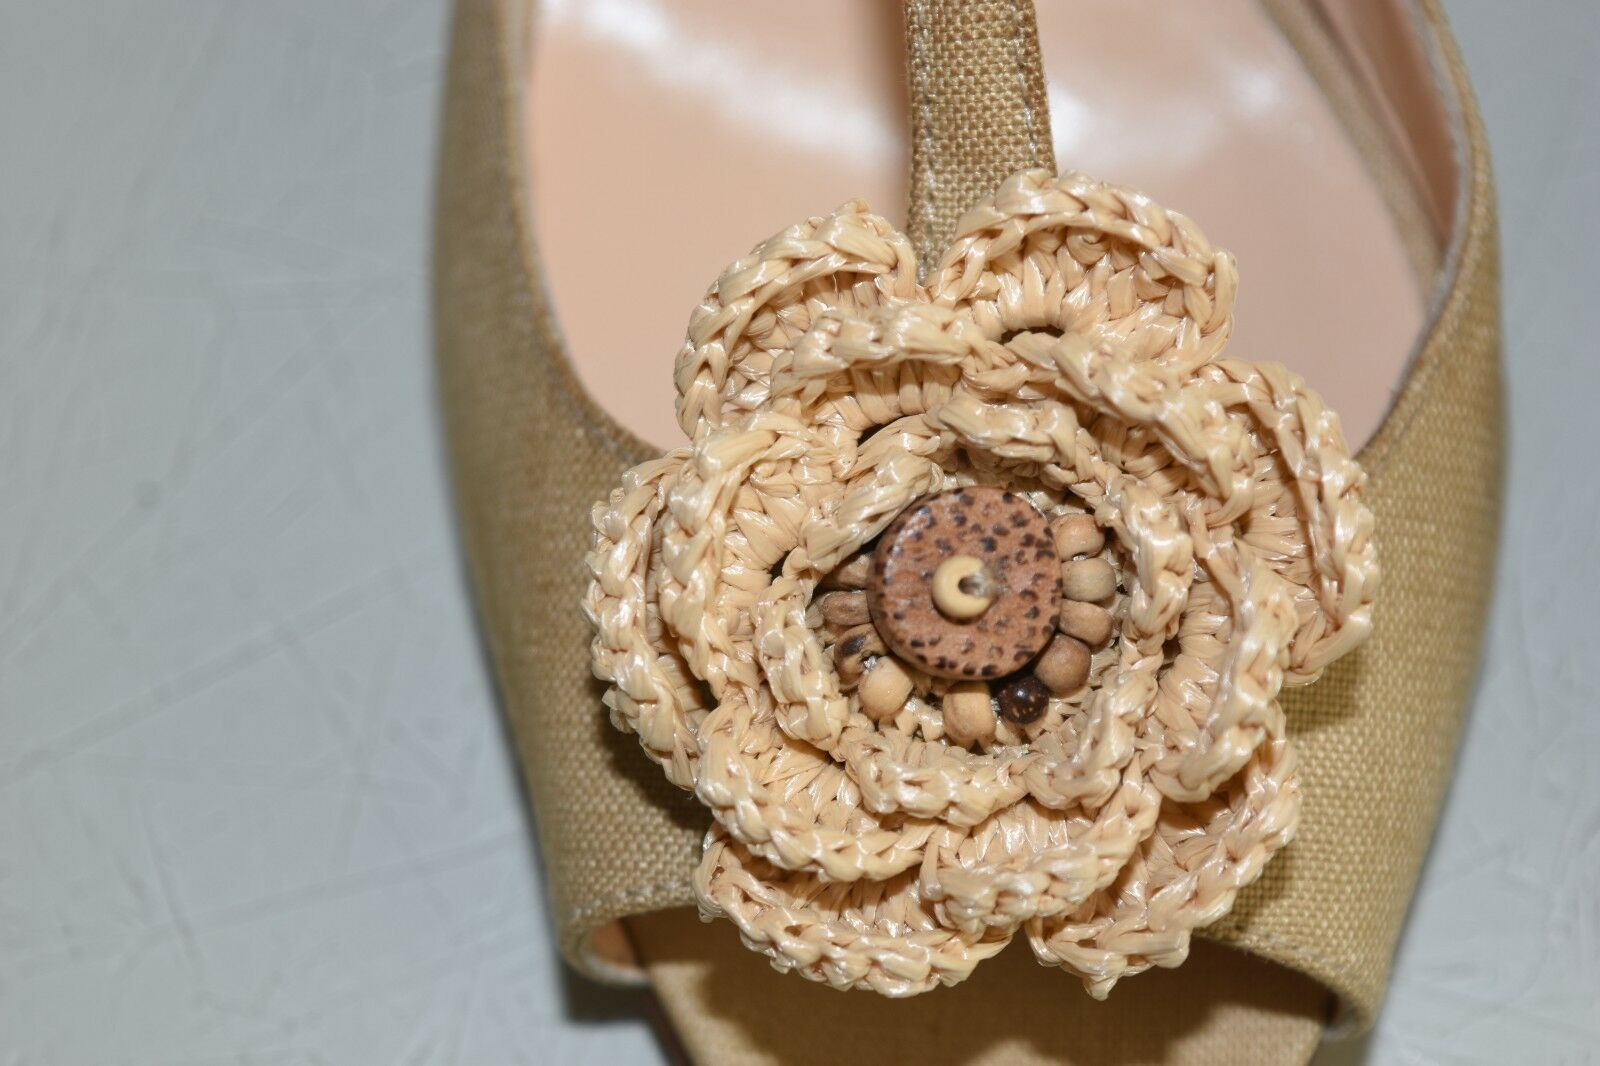 New Manolo Blahnik Thong T strap Sandals Sandals Sandals Heels Natural Beige Nude Linen chaussures 37 0a2745